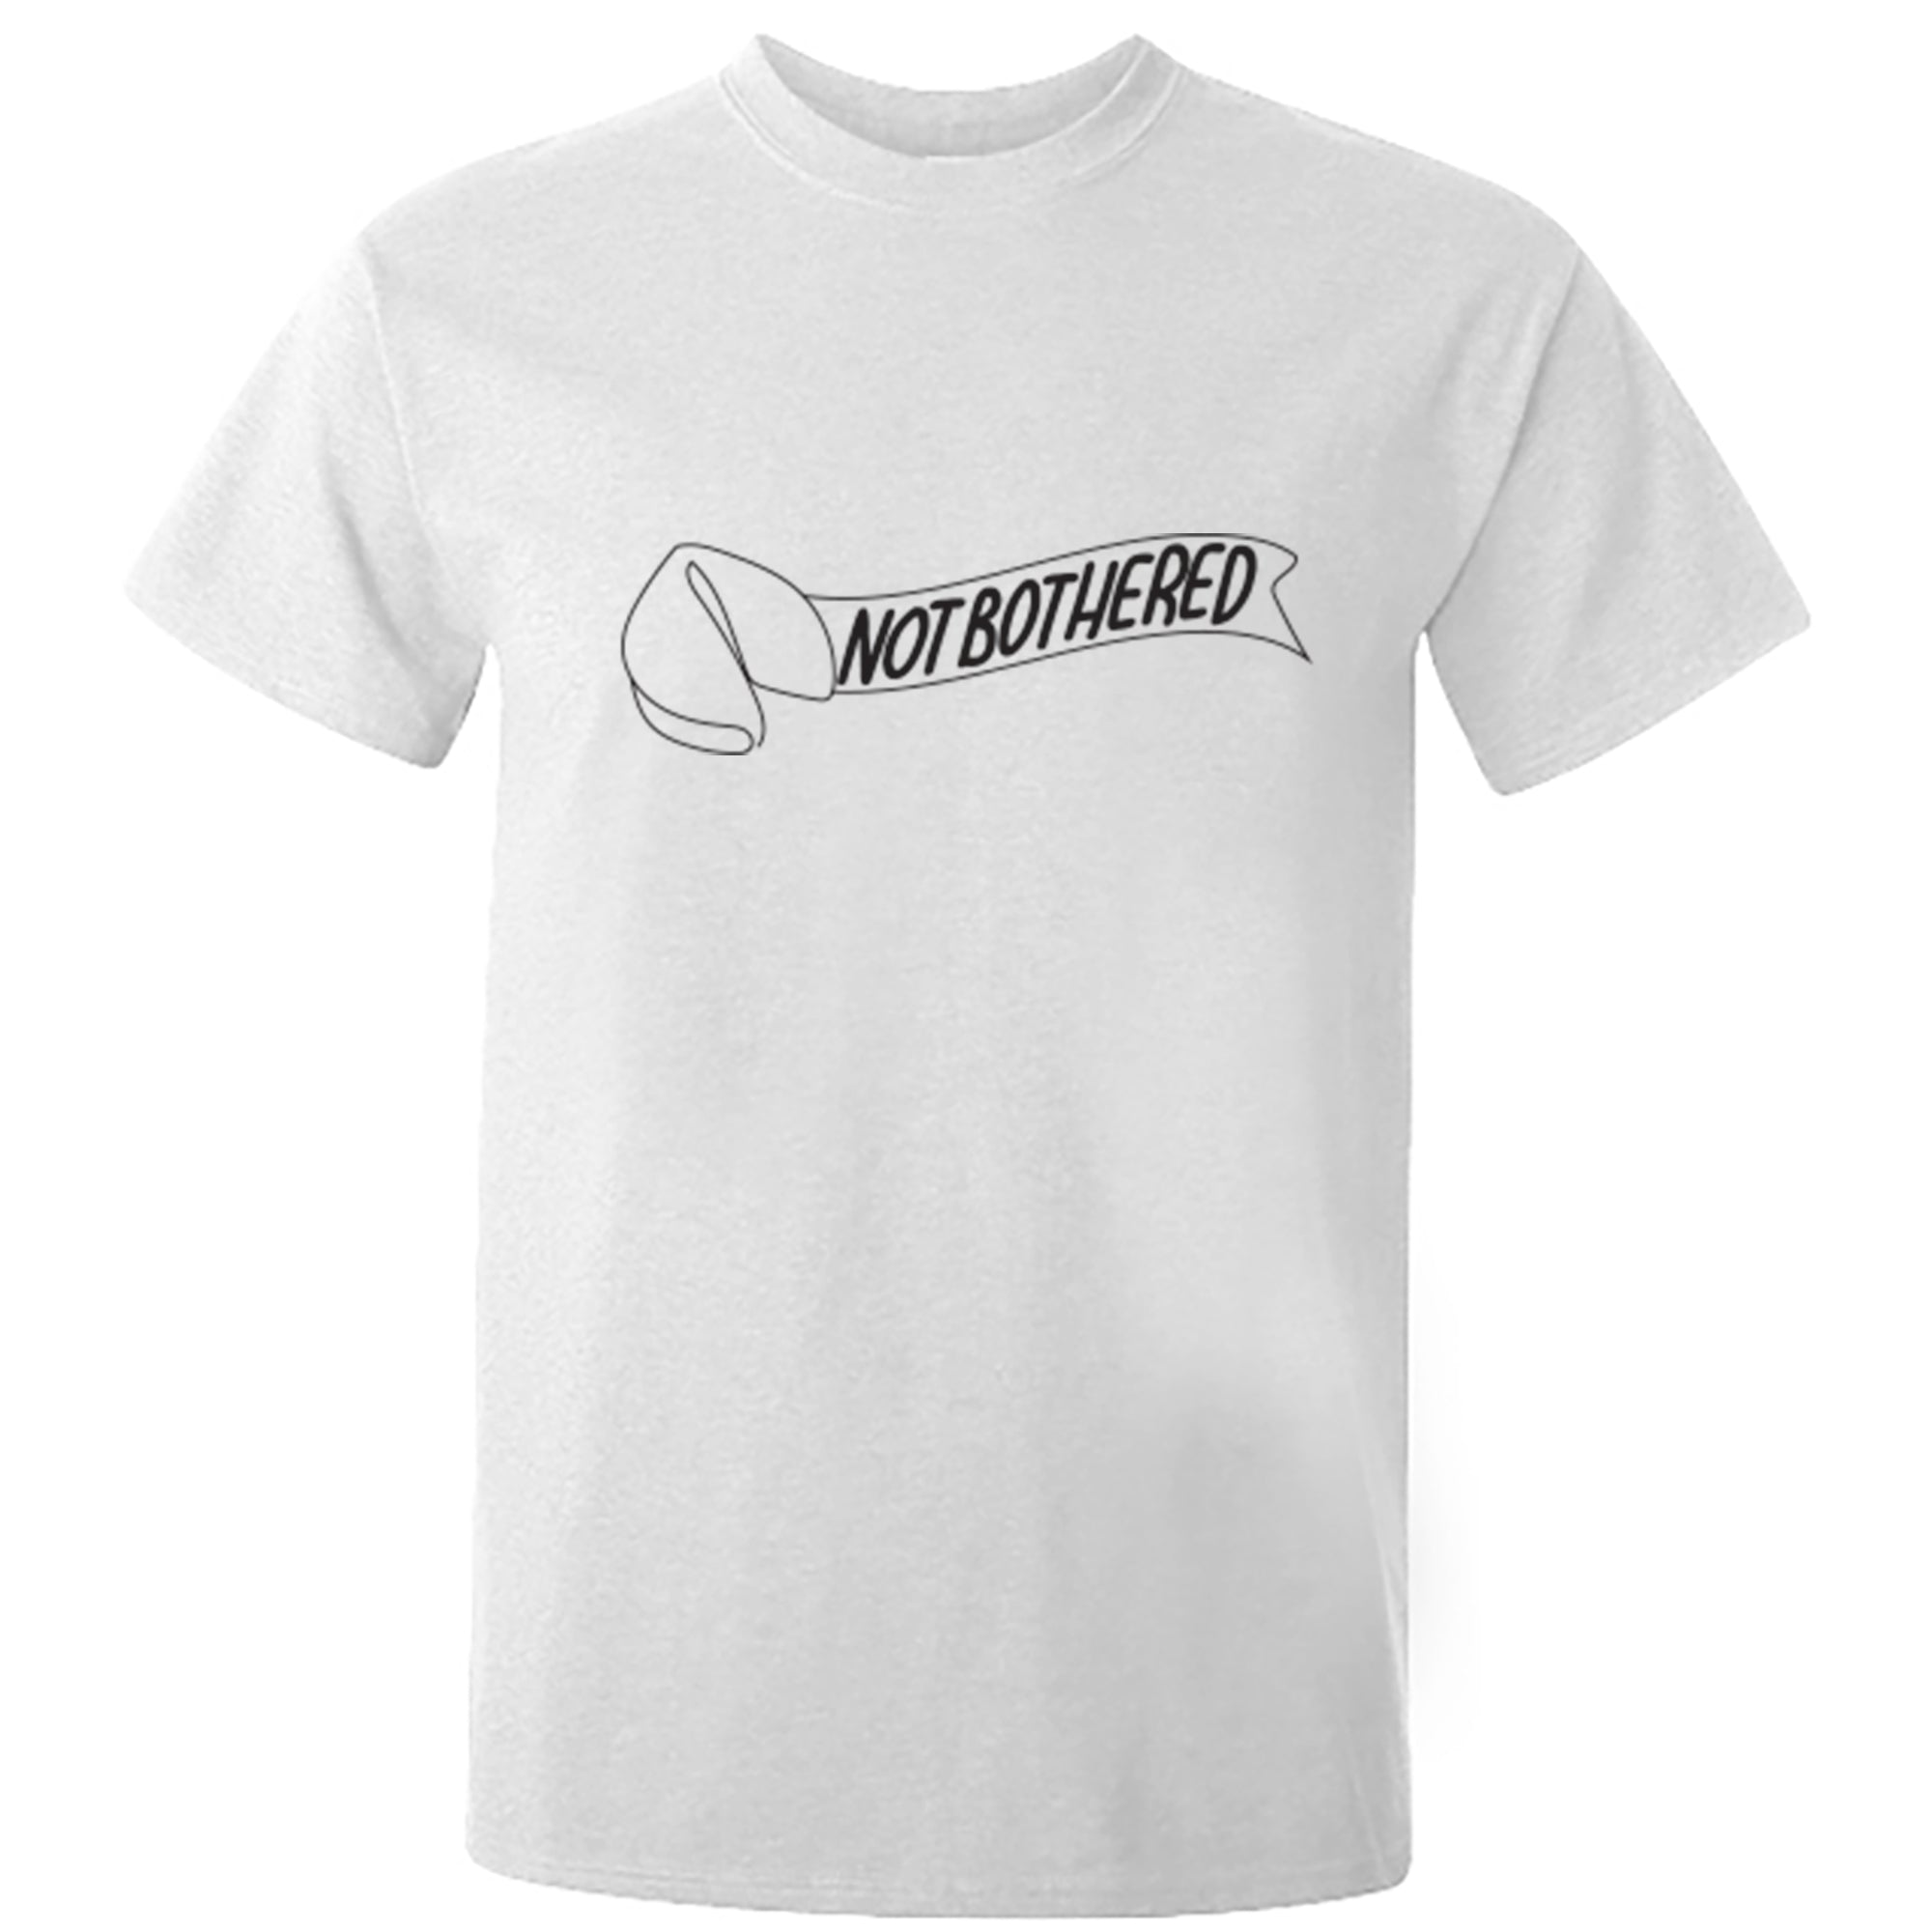 Not Bothered Fortune Cookie Unisex Fit T-Shirt S0023 - Illustrated Identity Ltd.